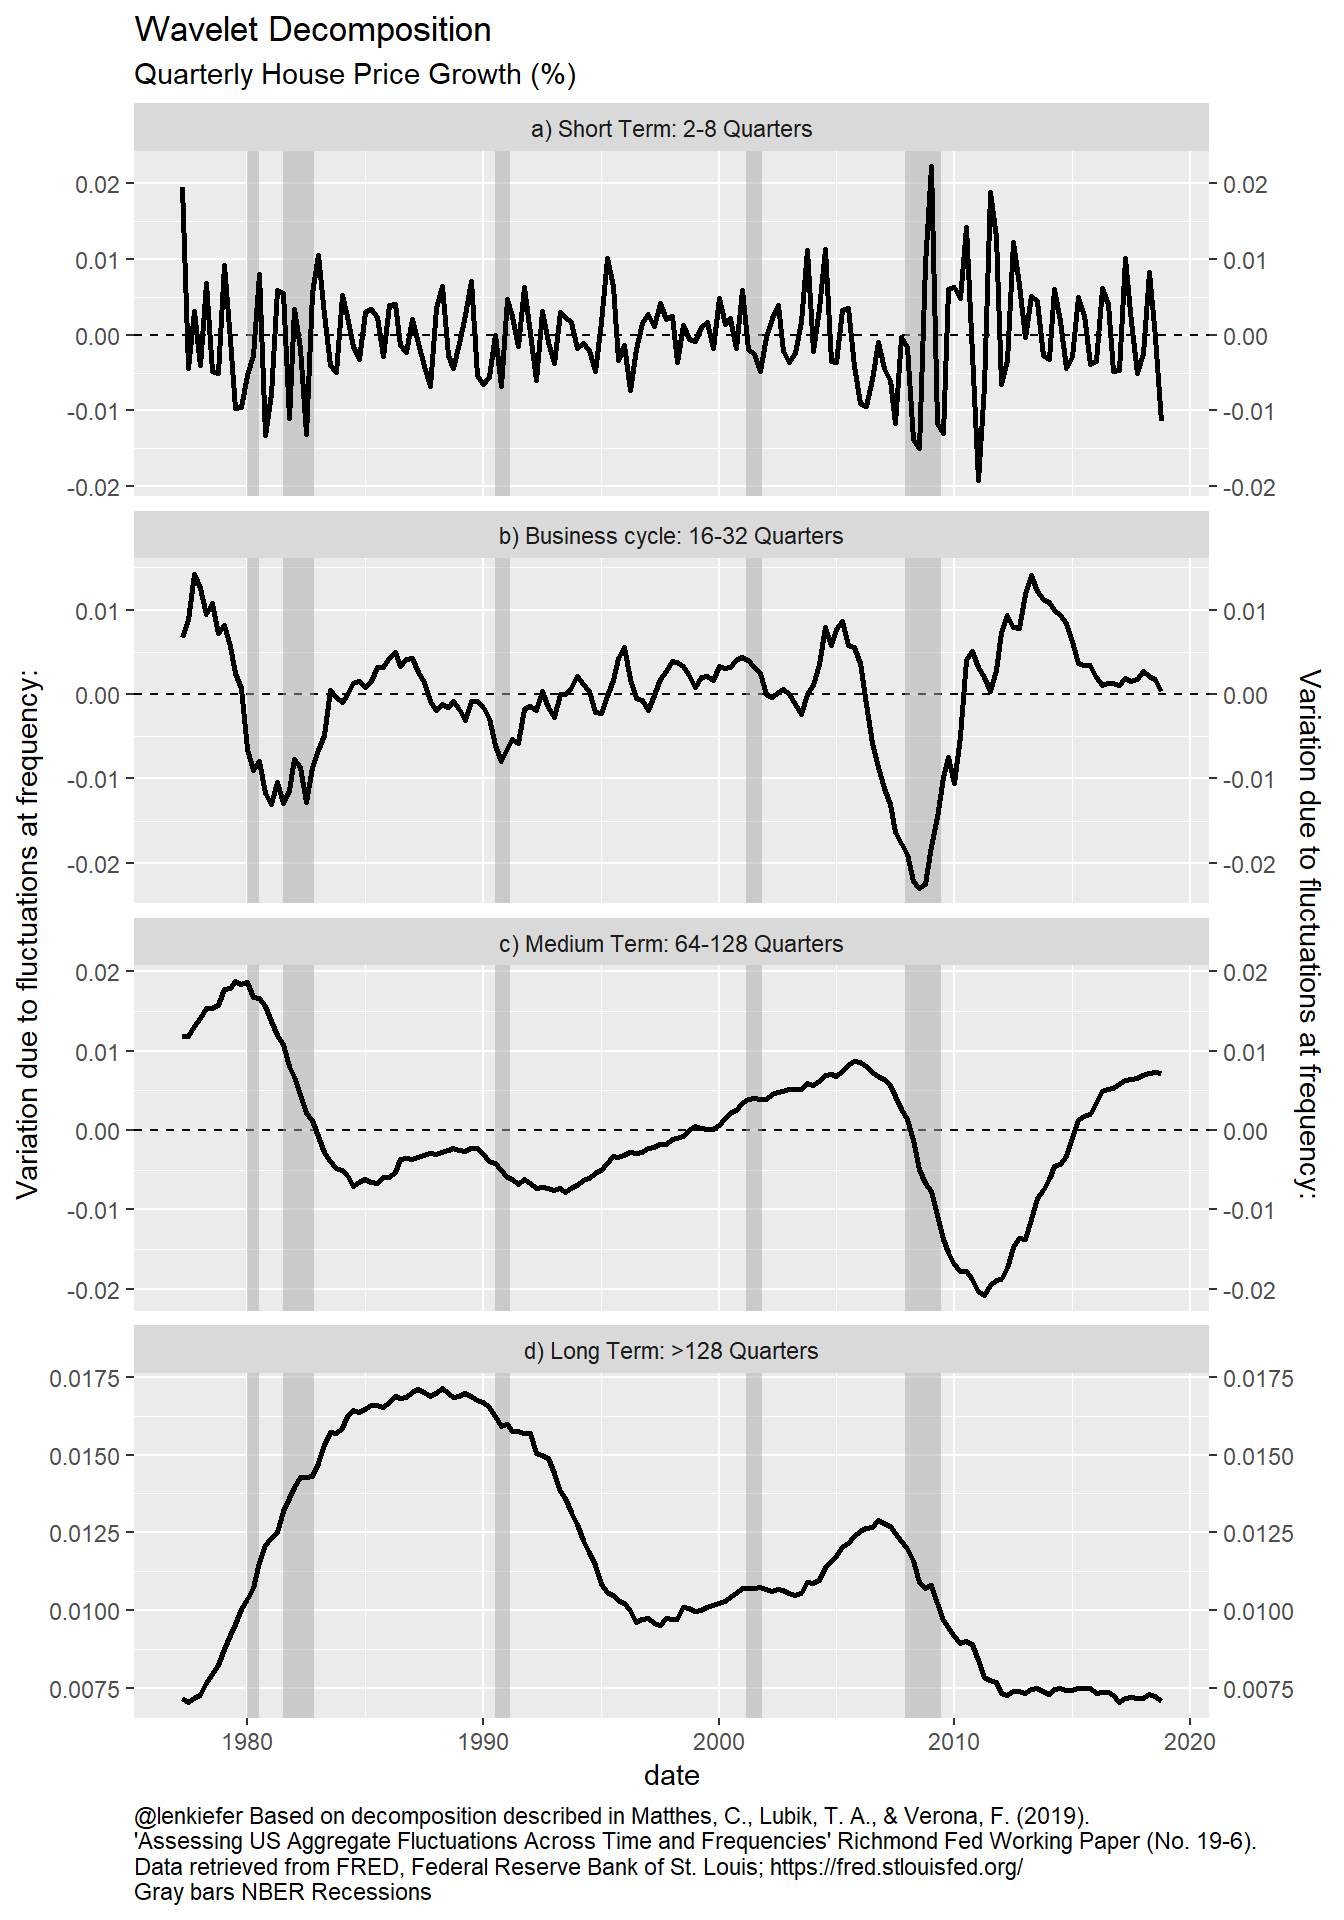 Variance decomposition of house price index